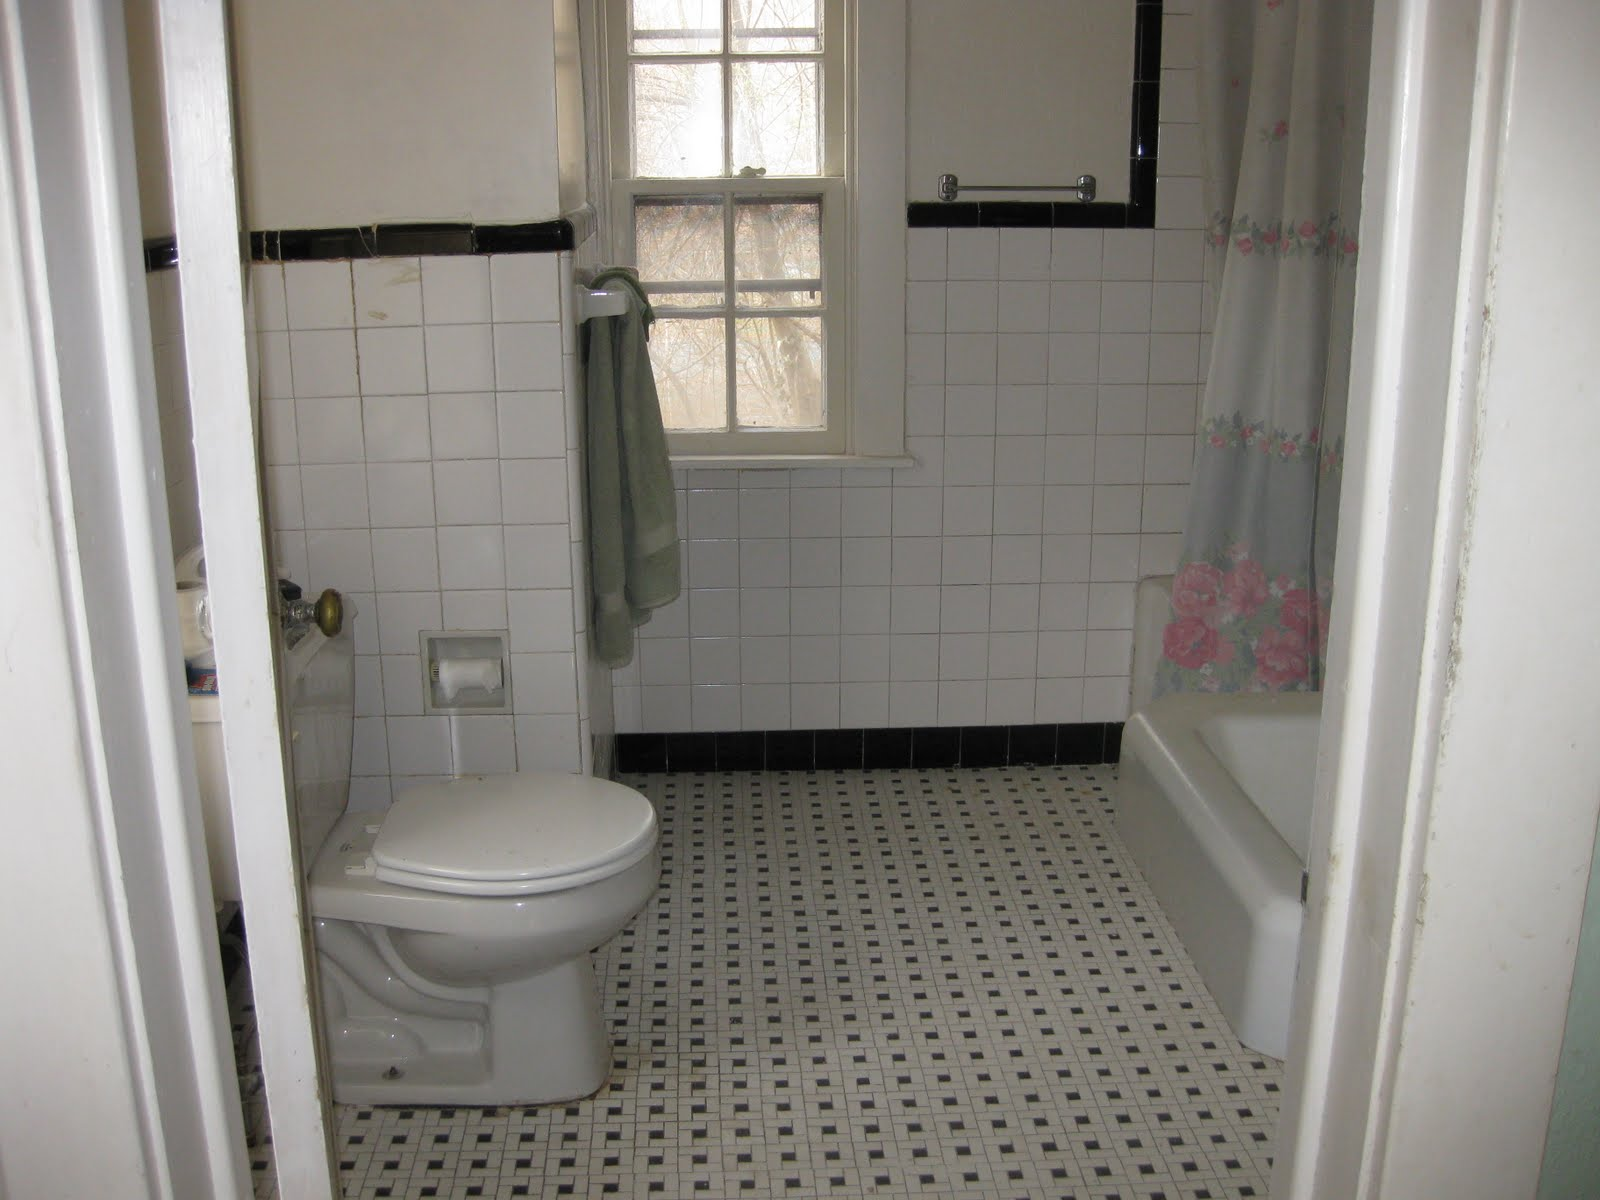 Black and white vintage bathrooms - All Rooms Bath Photos Bathroom